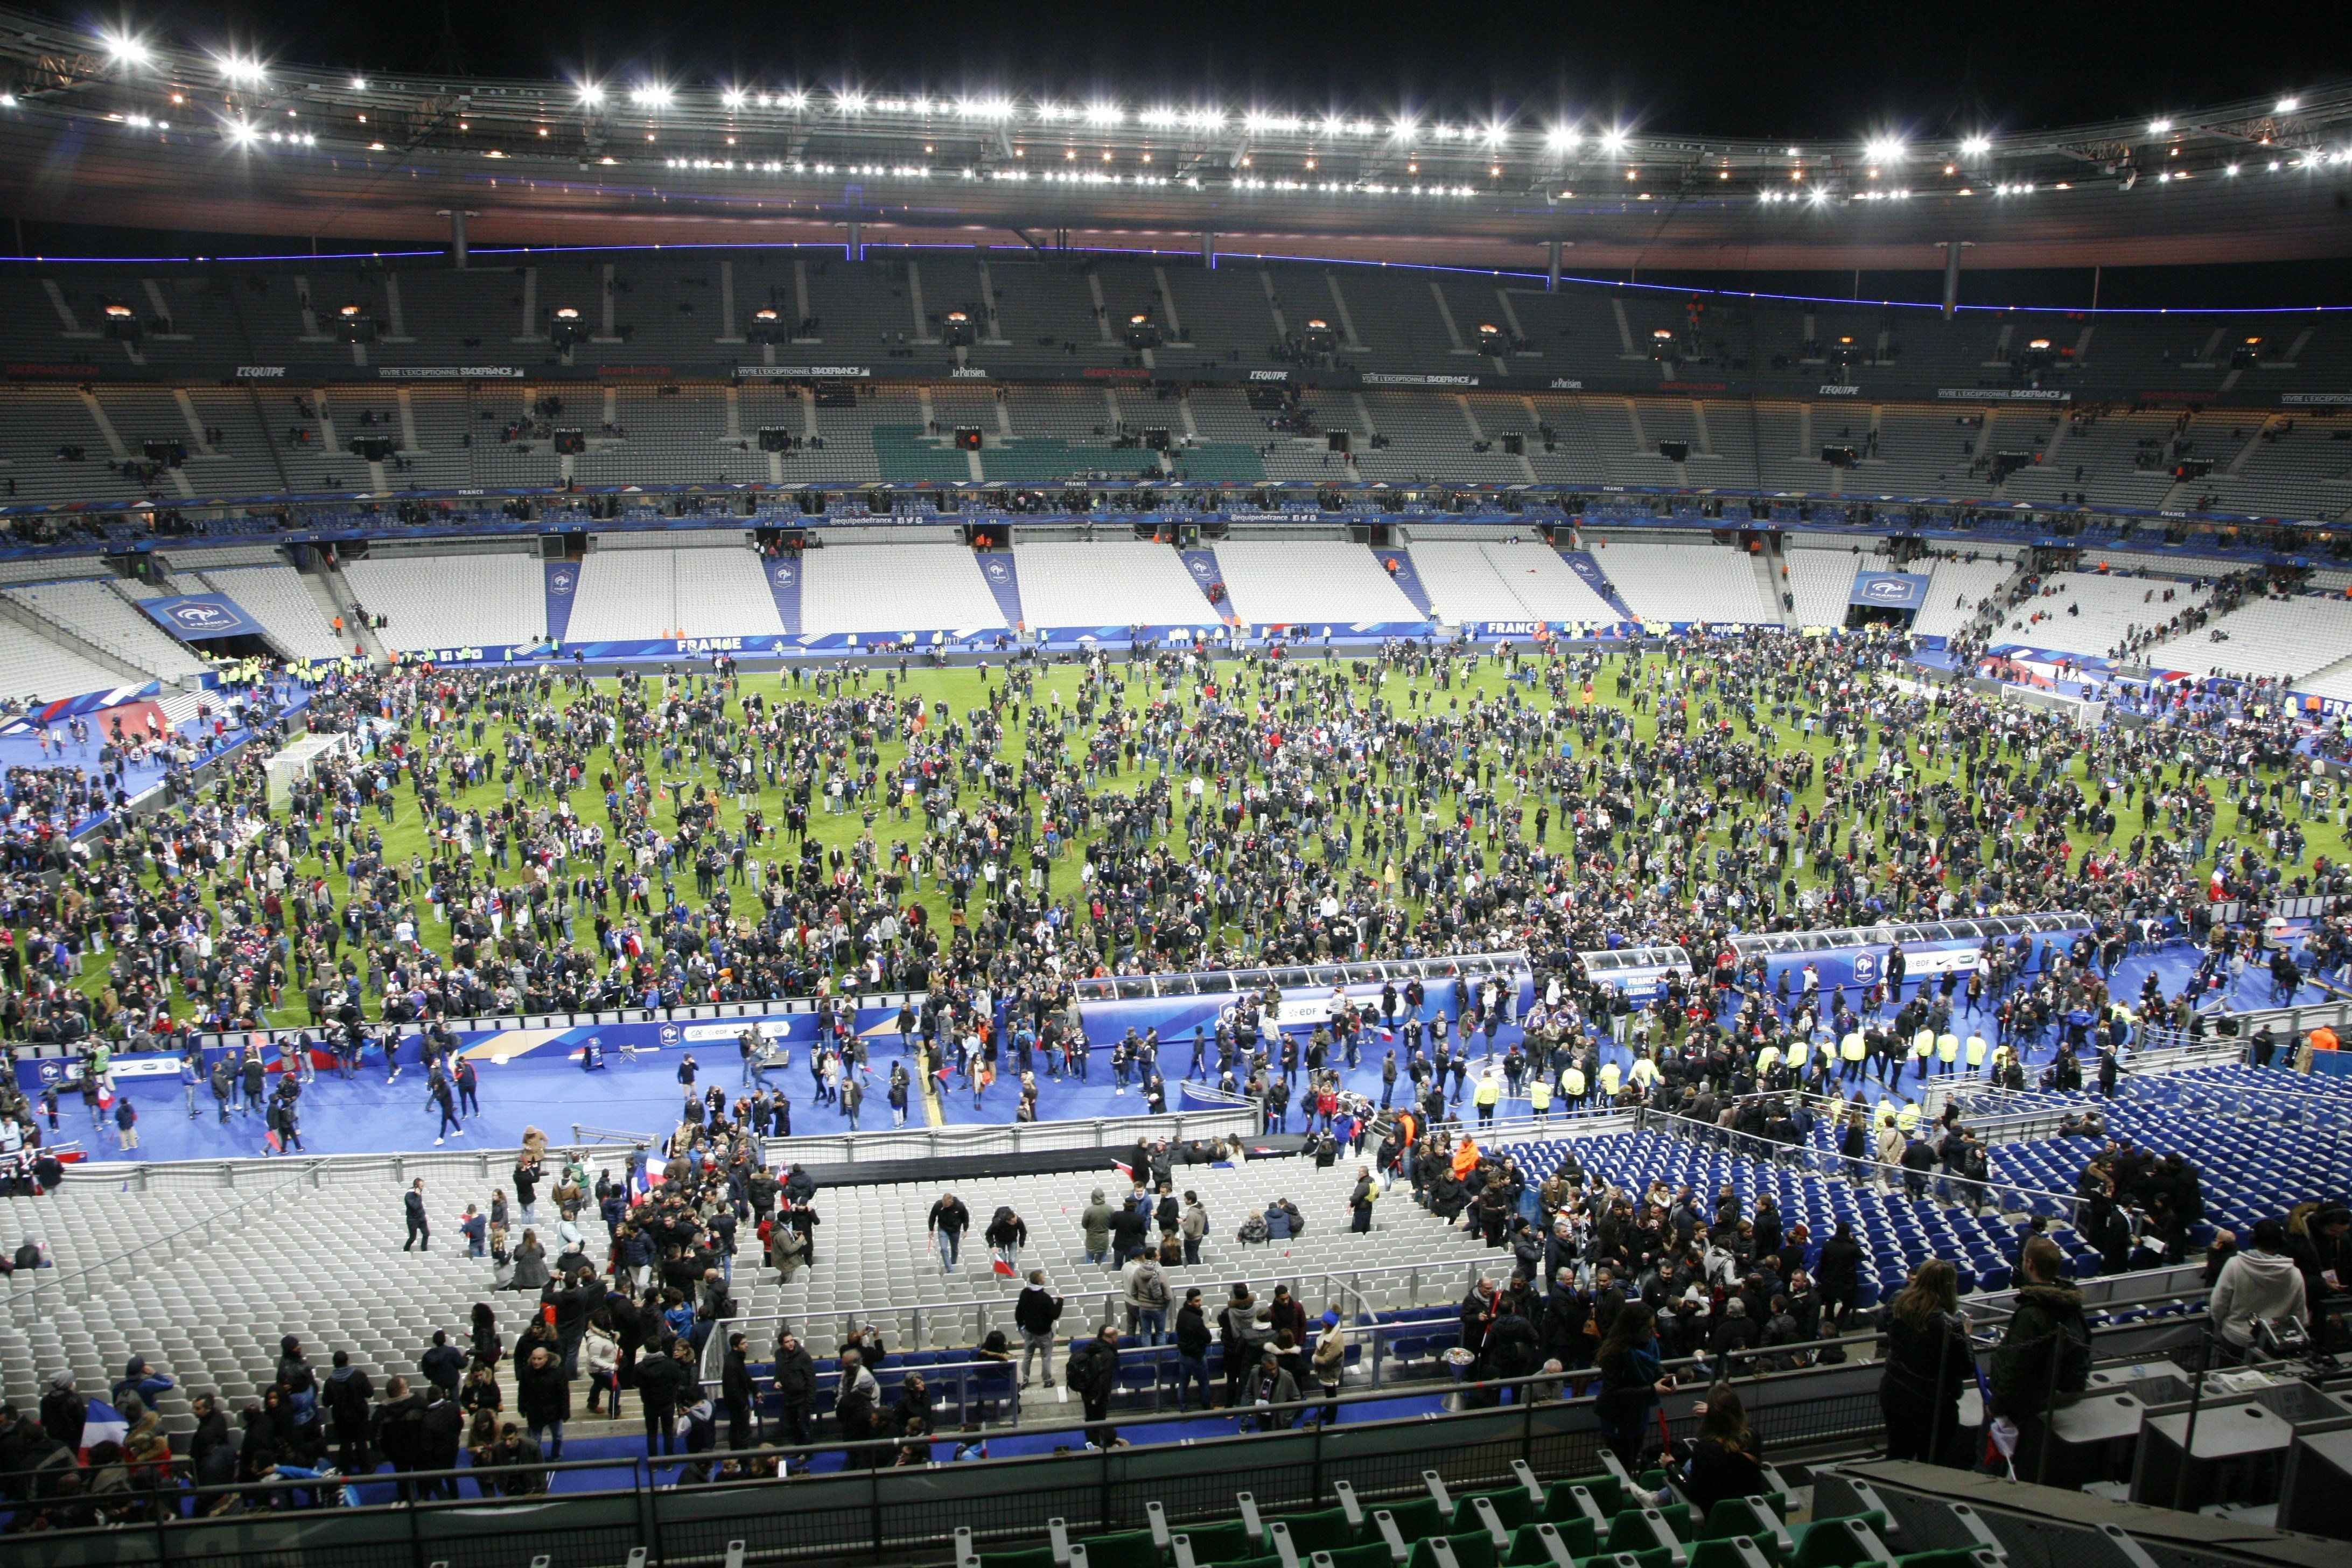 """<span class='image-component__caption' itemprop=""""caption"""">Spectators on the field after the explosions near the stadium.</span>"""